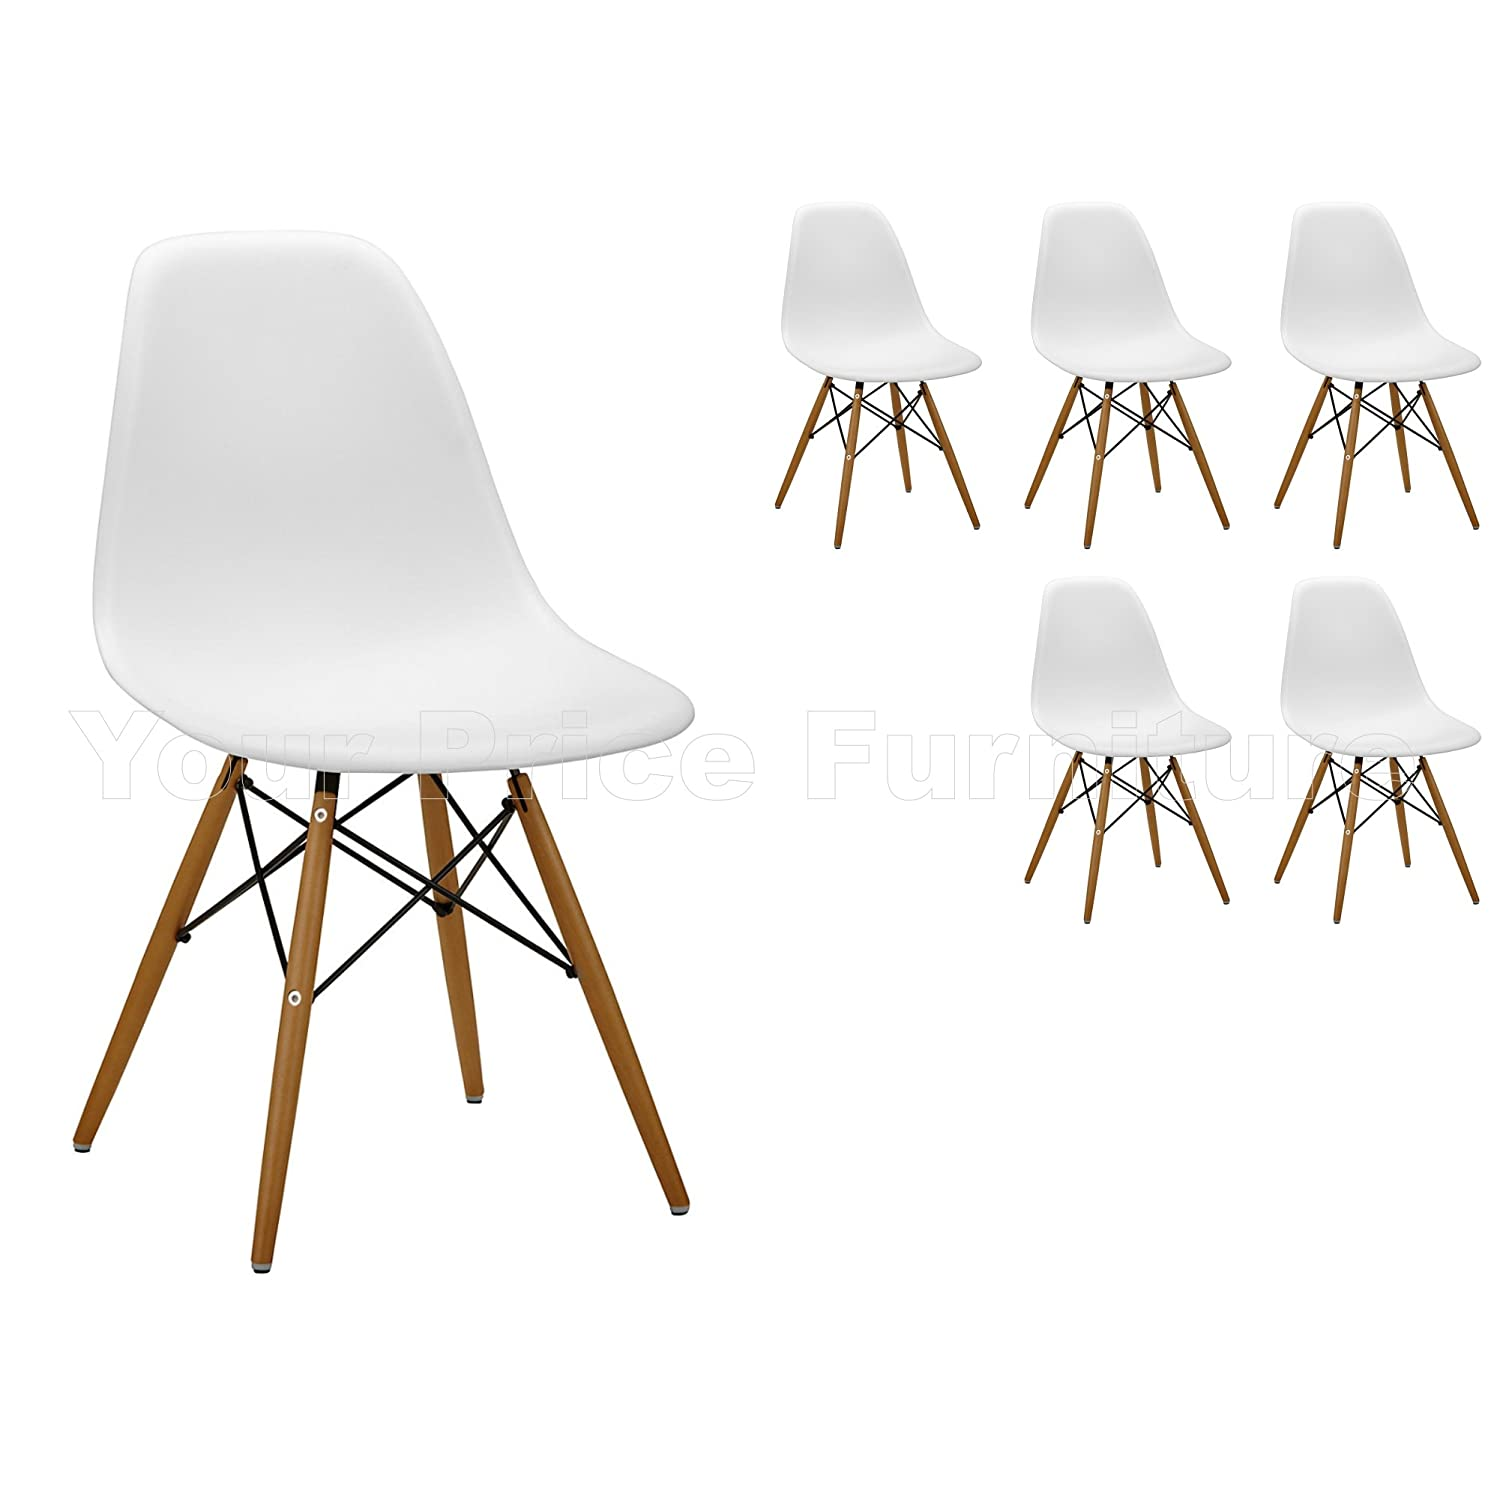 elegant se stile eames dsw eiffel in abs bianche it casa e cucina with eames se